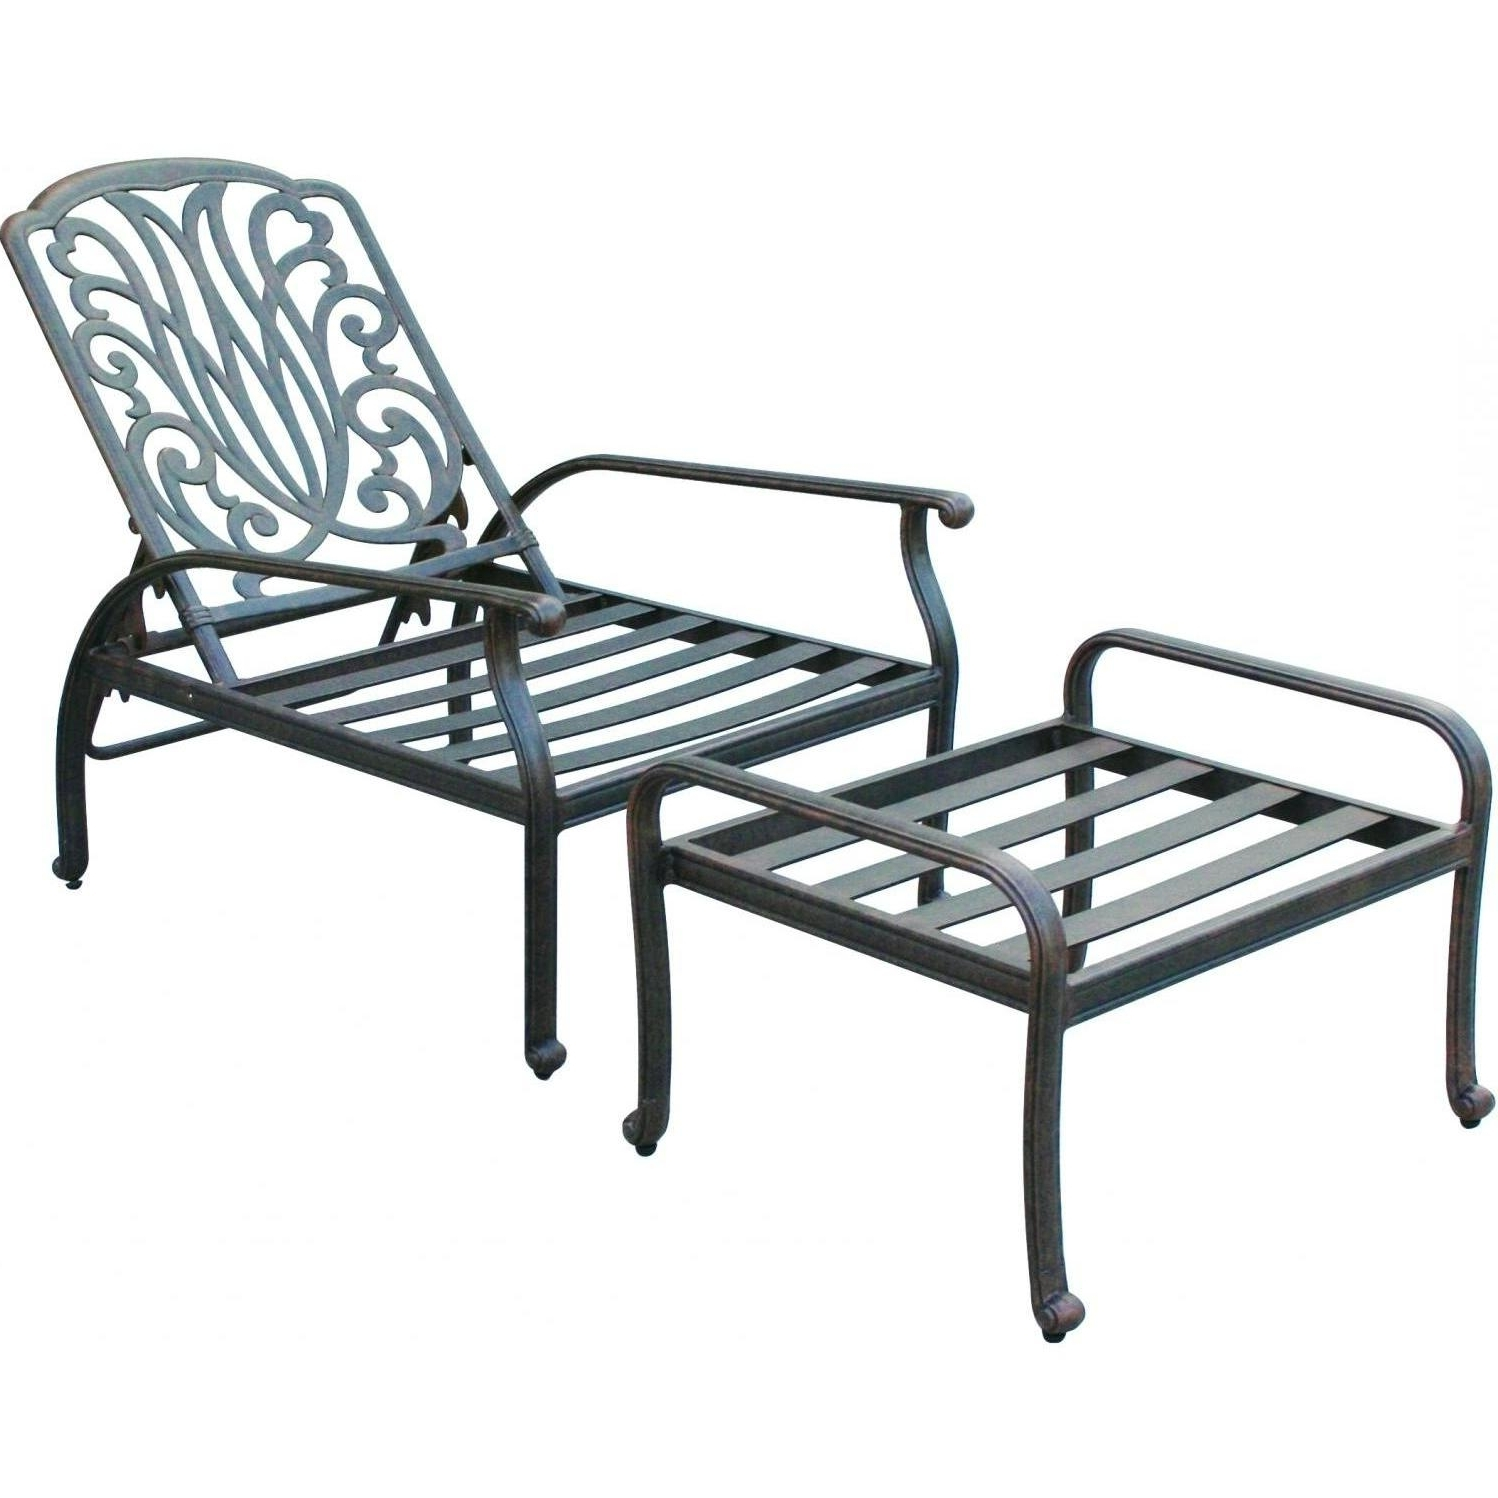 Chaise Lounge Chairs For Backyard Regarding Best And Newest Convertible Chair : Chairs Sale Double Lawn Chair Patio Chaise (View 5 of 15)